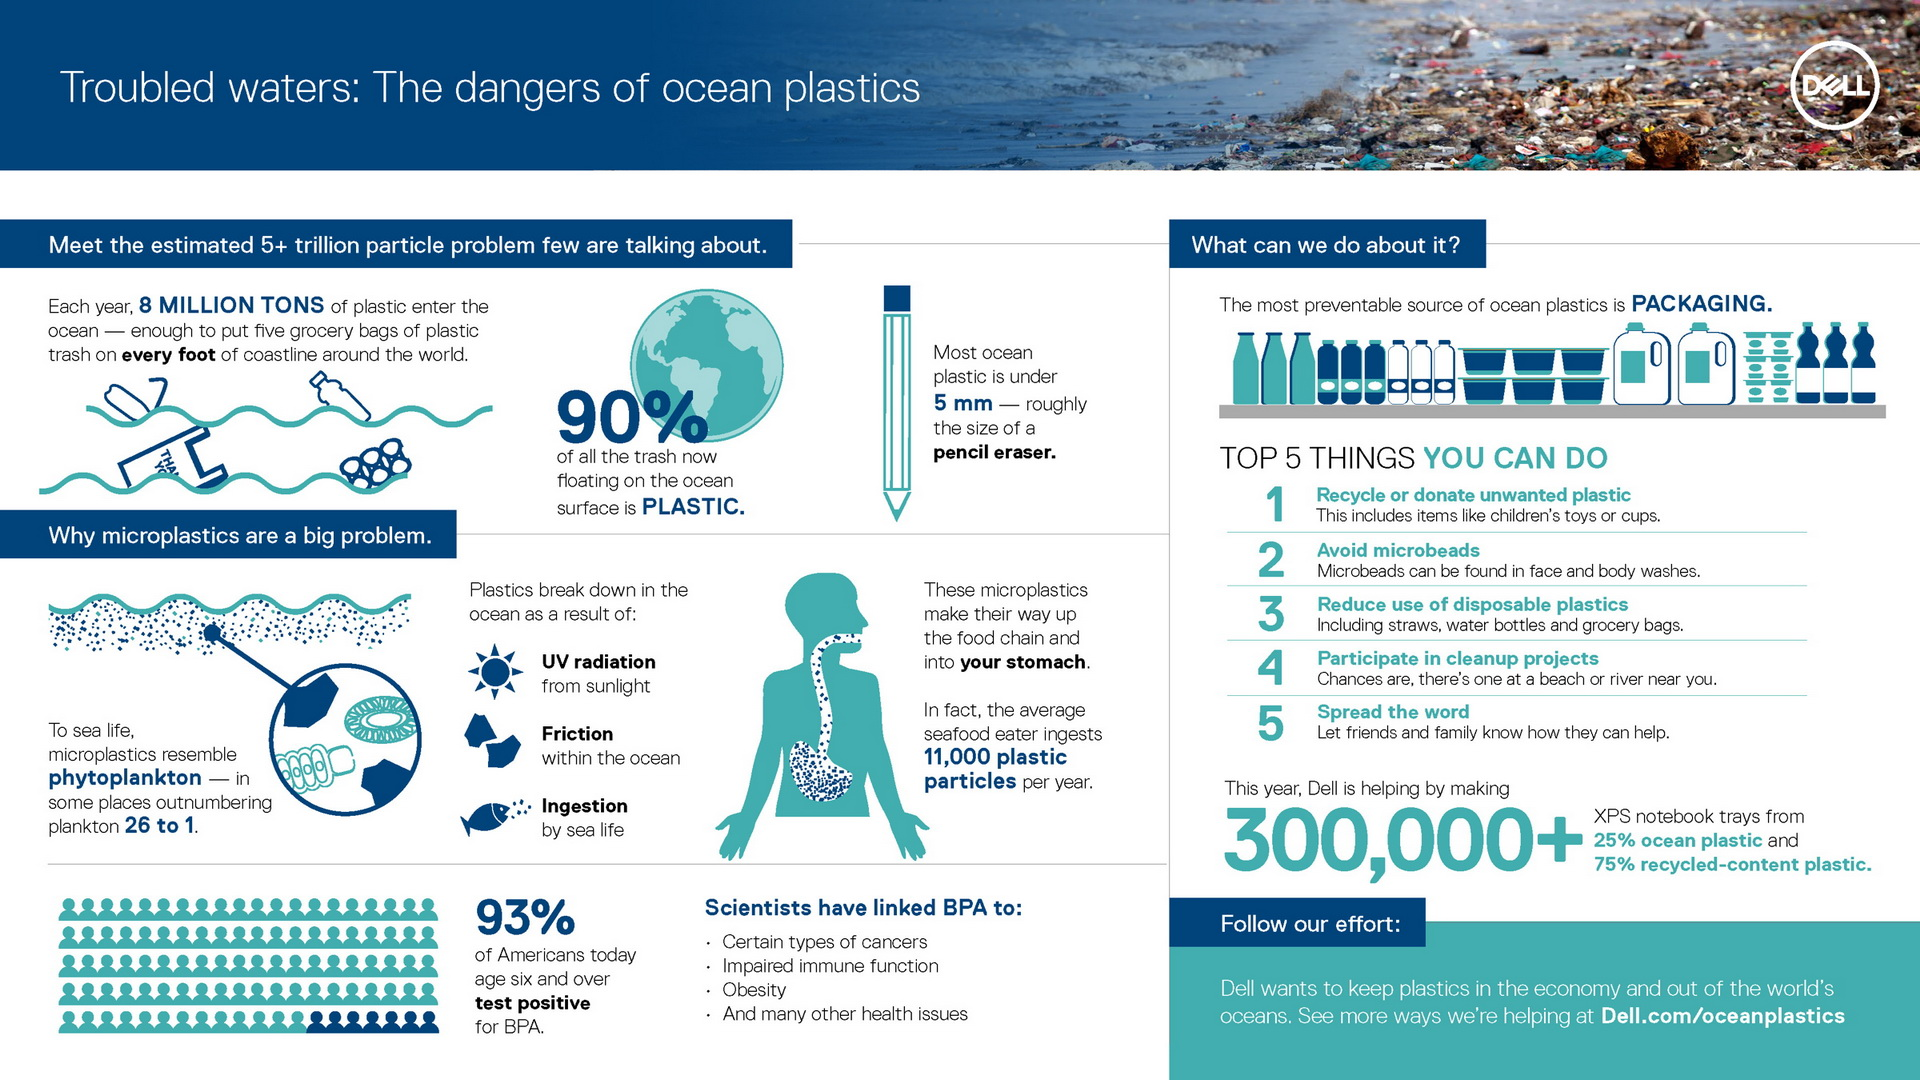 dell picking up plastic waste from oceans for use as new